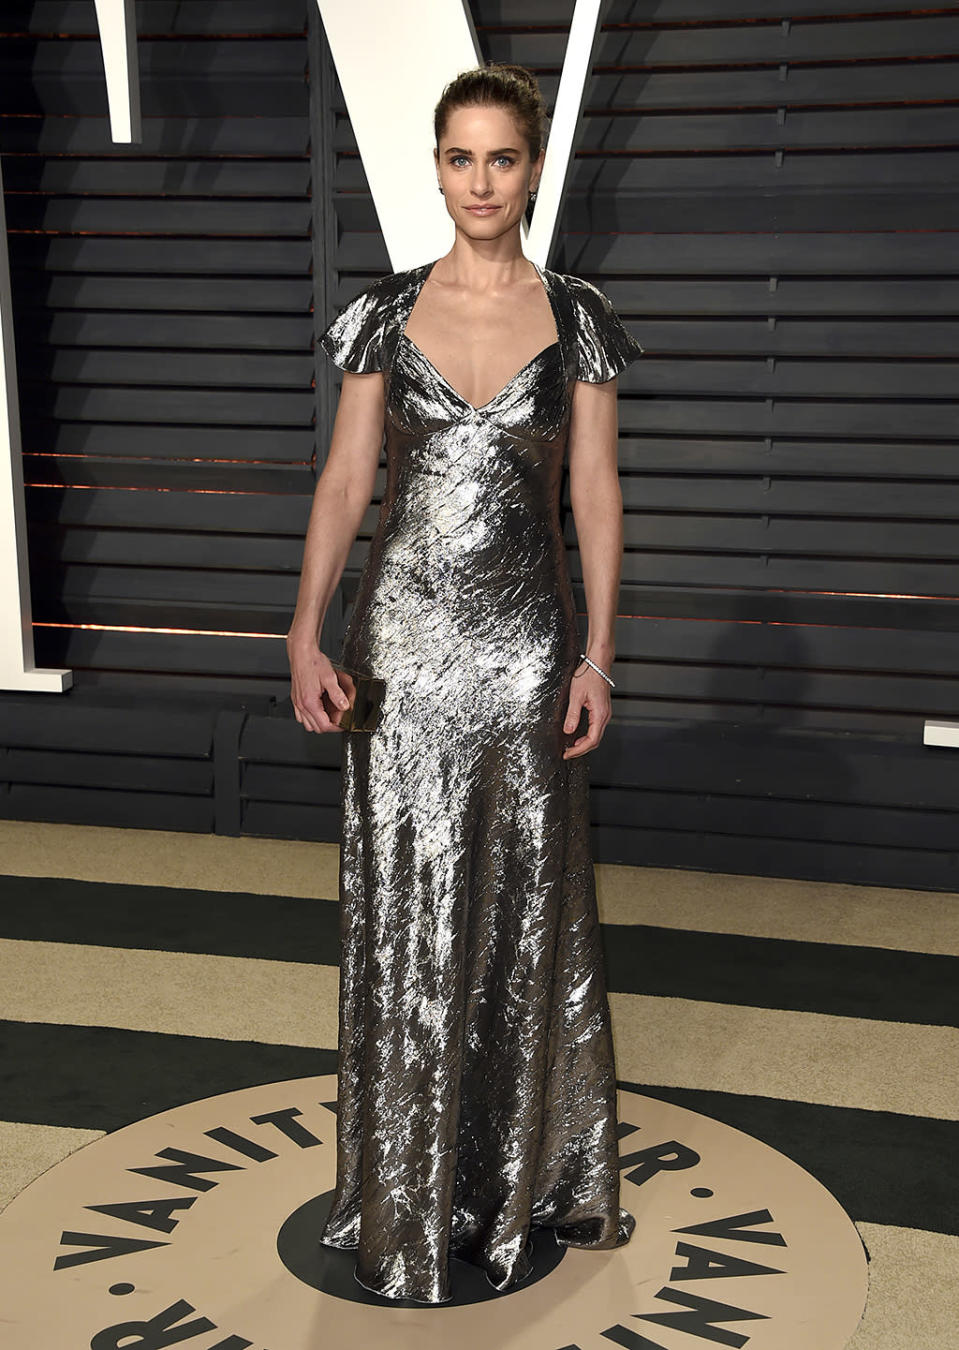 <p>Amanda Peet arrives at the Vanity Fair Oscar Party on Sunday, Feb. 26, 2017, in Beverly Hills, Calif. (Photo by Evan Agostini/Invision/AP) </p>